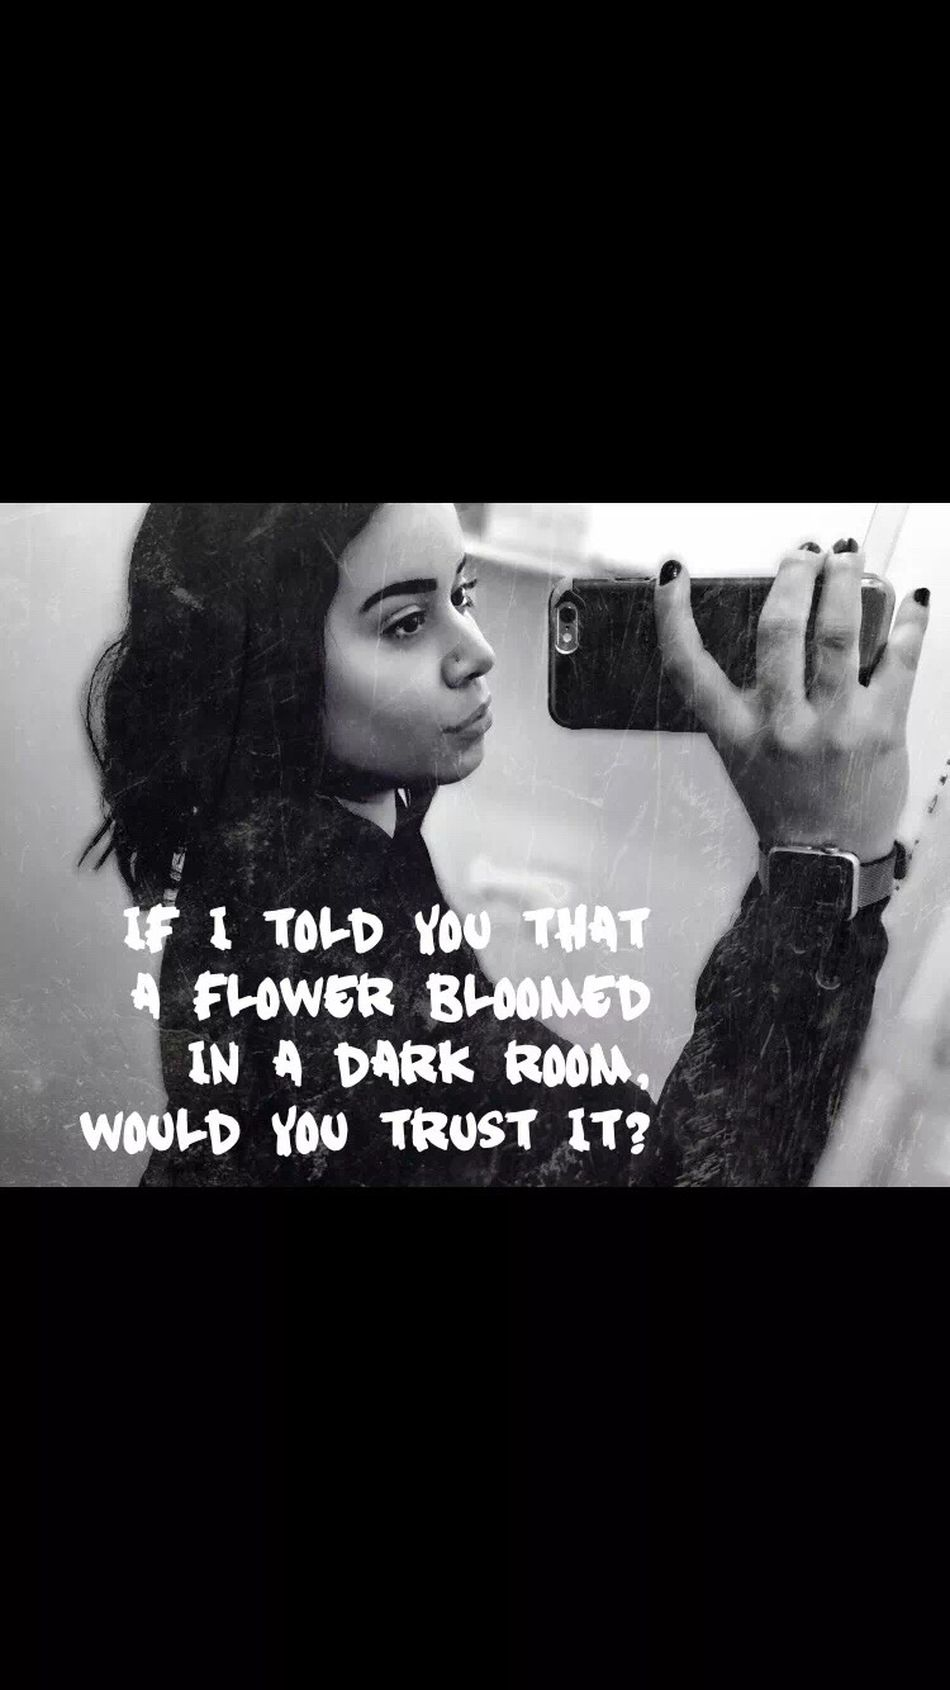 If I Told You That a Flower Bloomed in a Dark Room Would You Trust It? Mirrorselfie November Quick Pic Selfie ✌ Flick  Helloworld Pic Black Hair HelloEyeEm 2016 Hello Photo Eyem Picture Me Edits Workselfie Blackandwhite KendrickLamarQuote Poetic Justice  Quotes